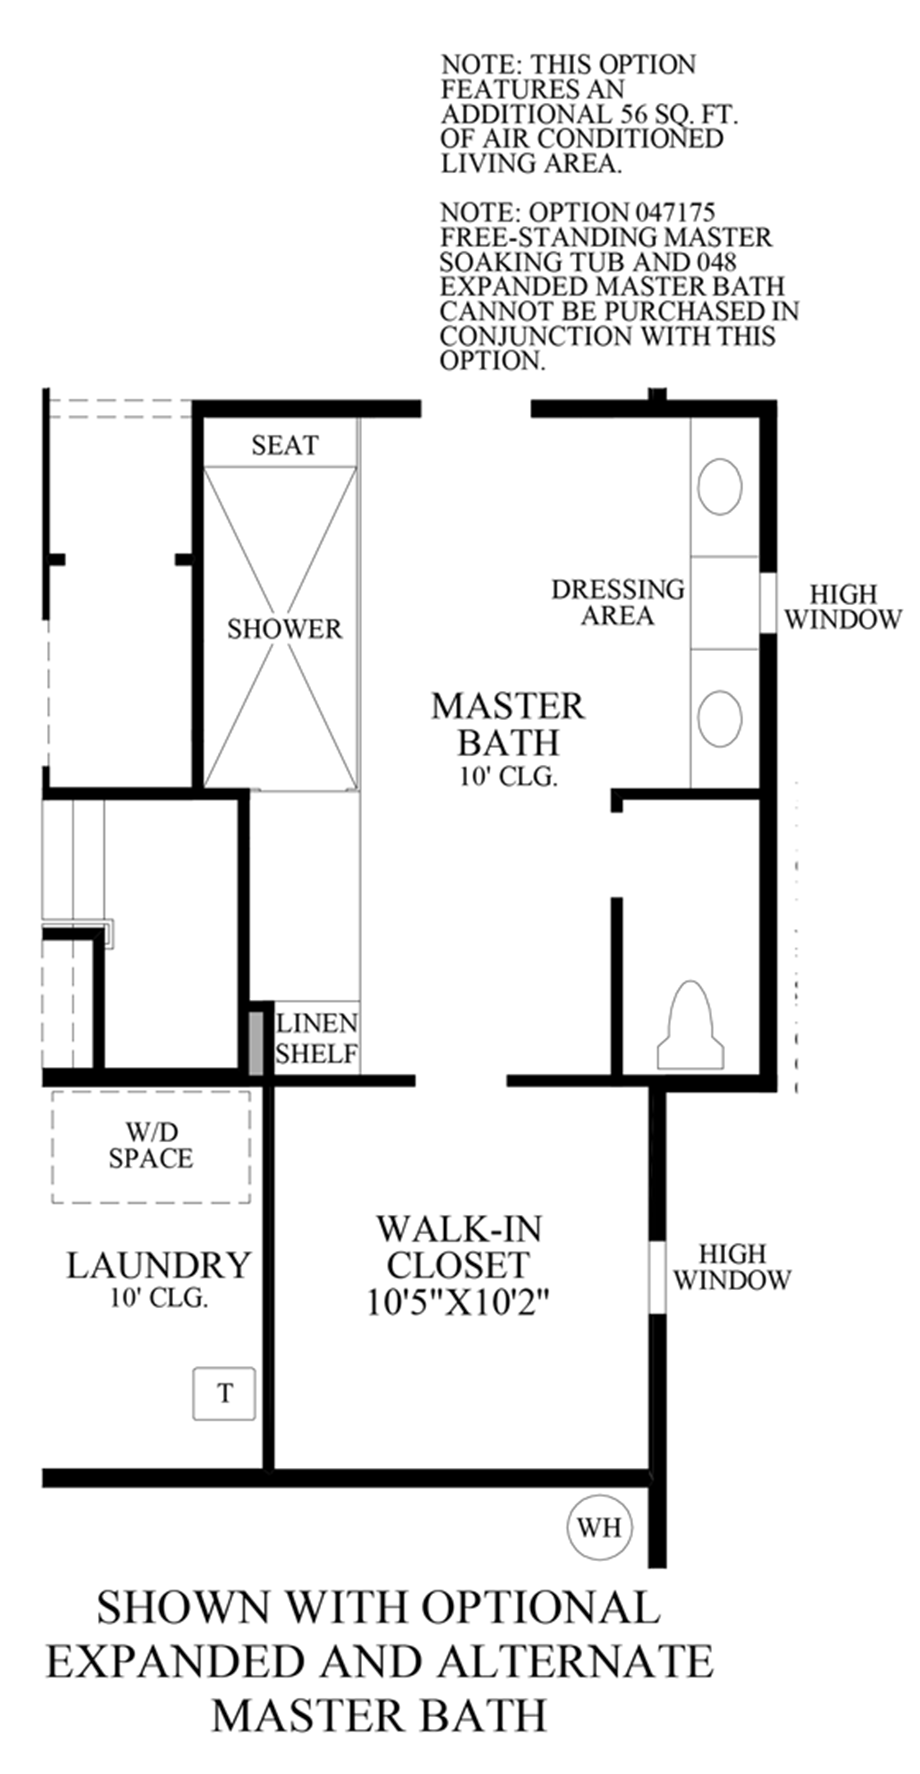 Optional Expanded & Alternate Master Bath Floor Plan